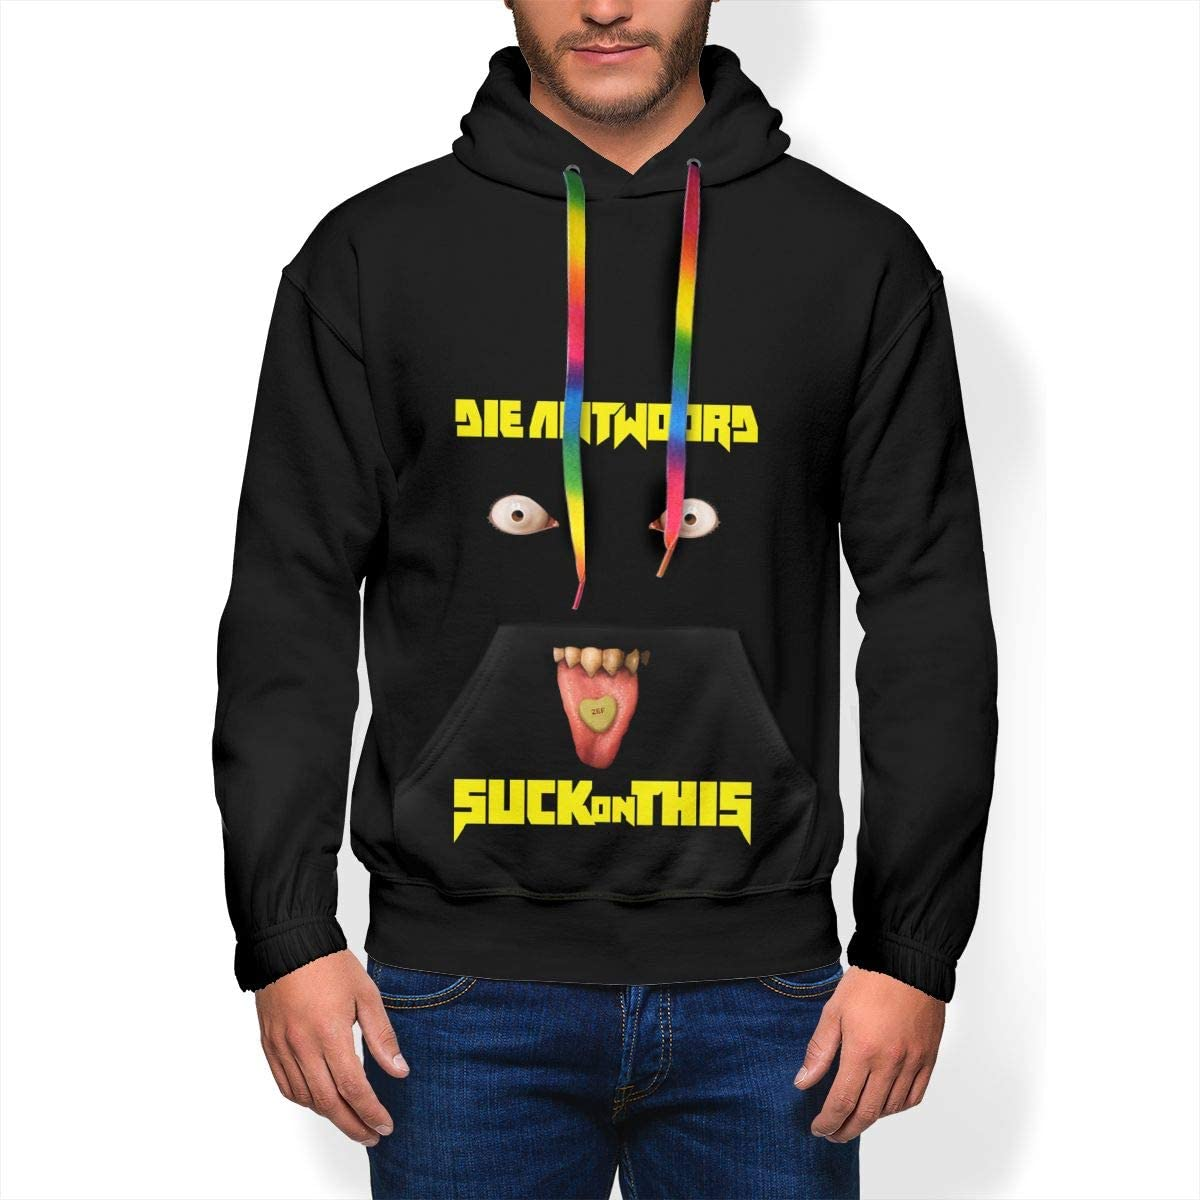 Die Antwoord Suck On This Mens Winter Jacket Clothes Plus Velvet Long Sleeve Hooded Sweat Shirt Pullover